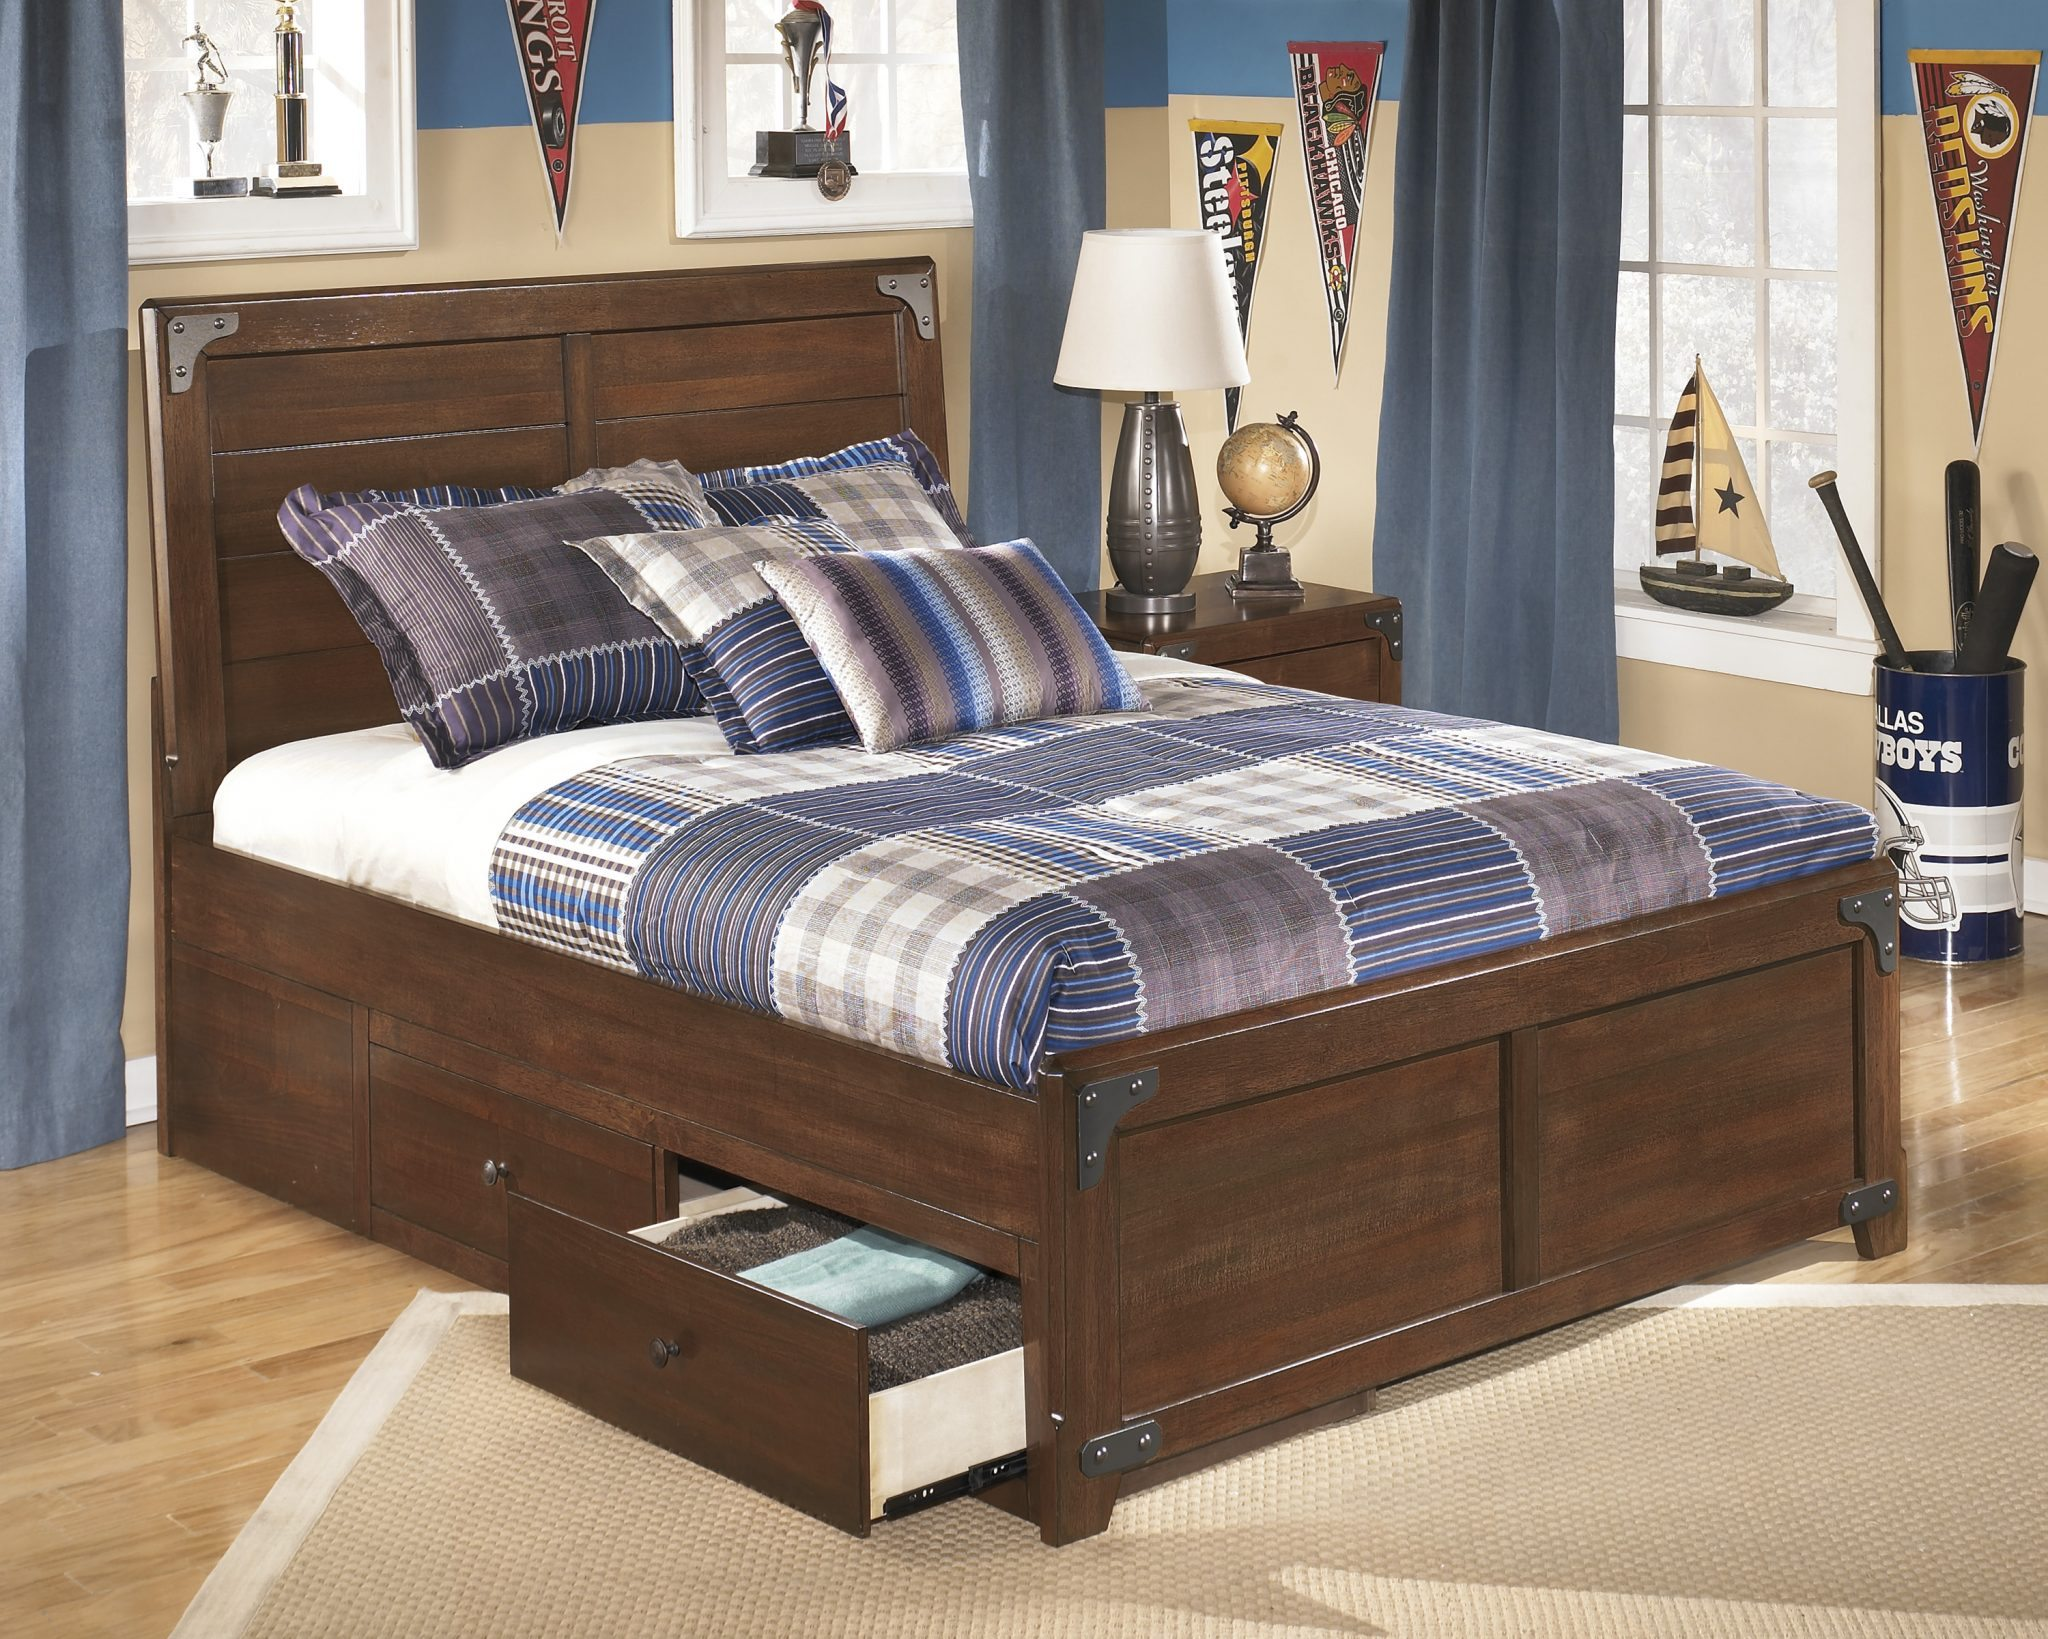 Picture of: Ashley Furniture Bed With Storage King